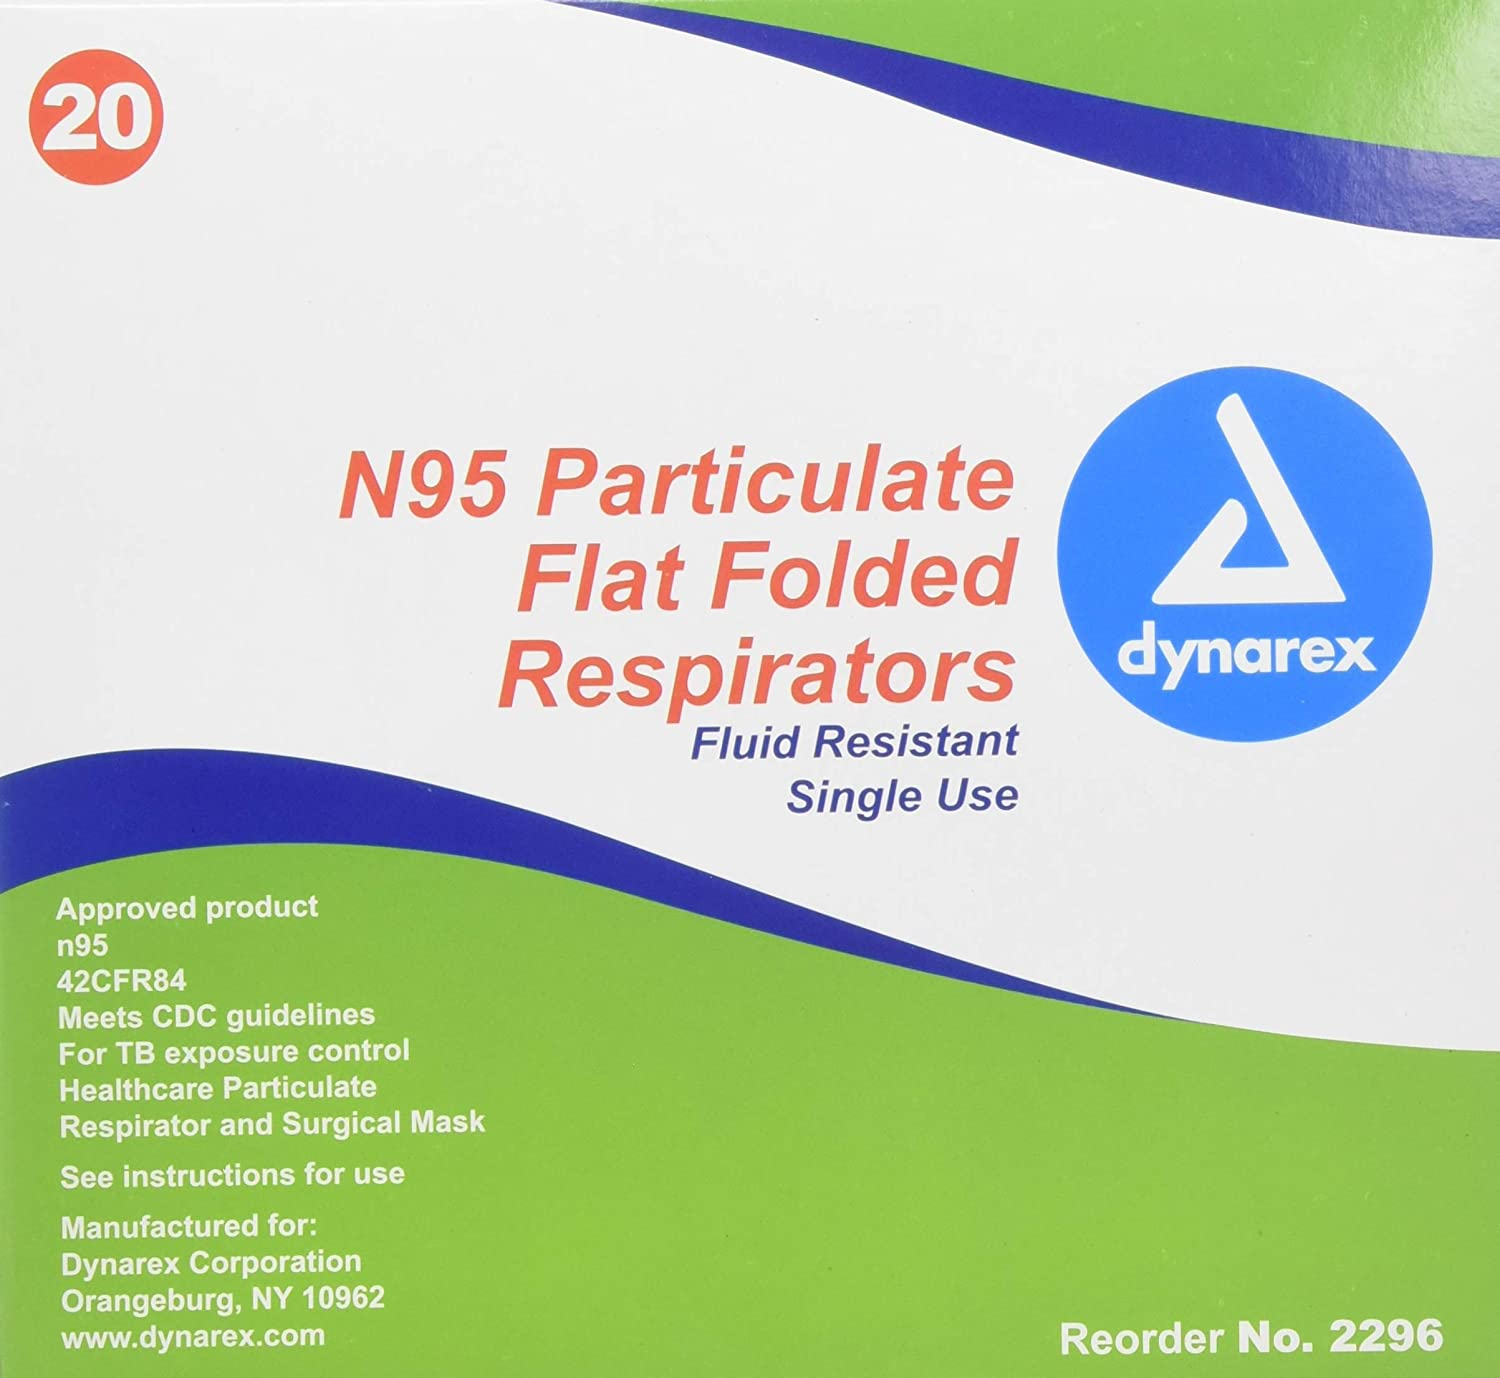 20 Mask Amazon Box Respirator Flat N95 Folded Particulate Of